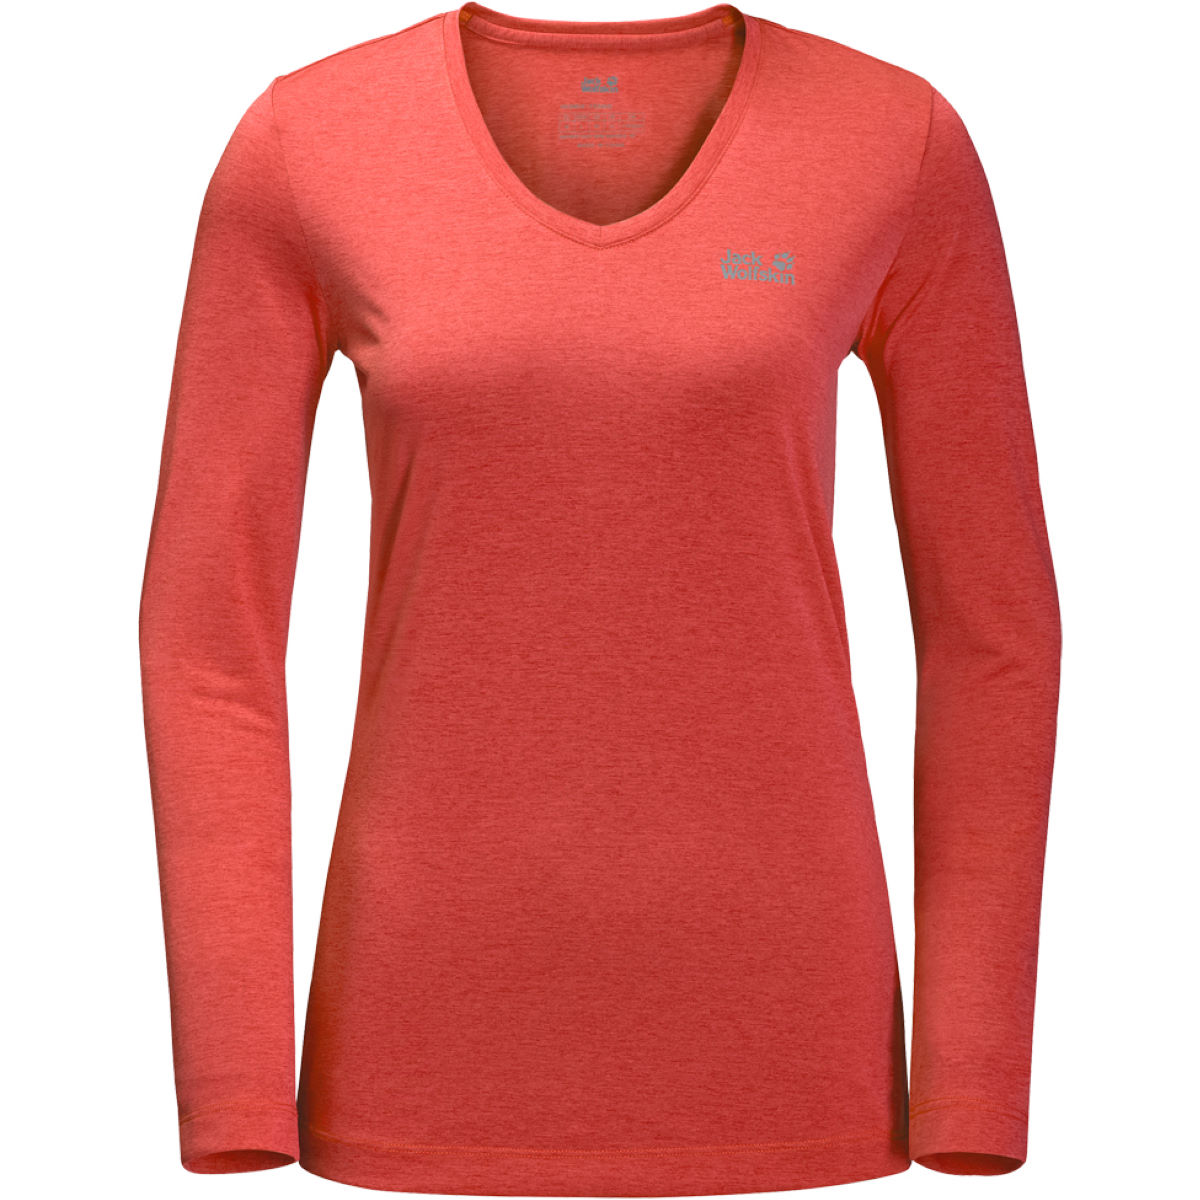 Maillot Femme Jack Wolfskin Crosstrail (manches longues) - Small